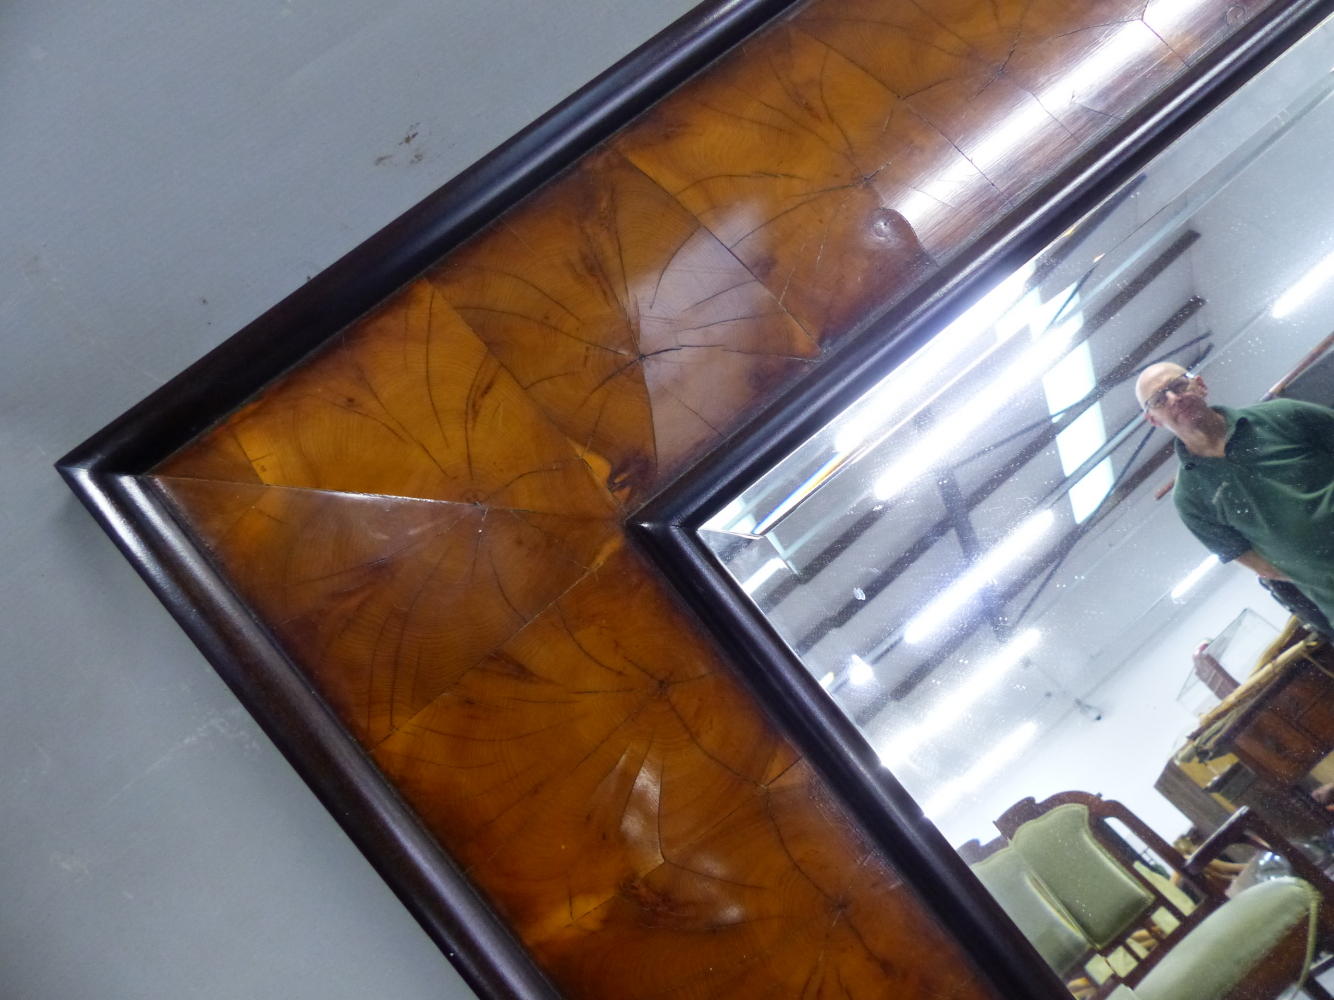 Lot 2189 - AN IMPRESSIVE WILLIAM AND MARY STYLE LARGE CUSHION FRAME OYSTER VENEER WALL MIRROR. 122 x 109cms.